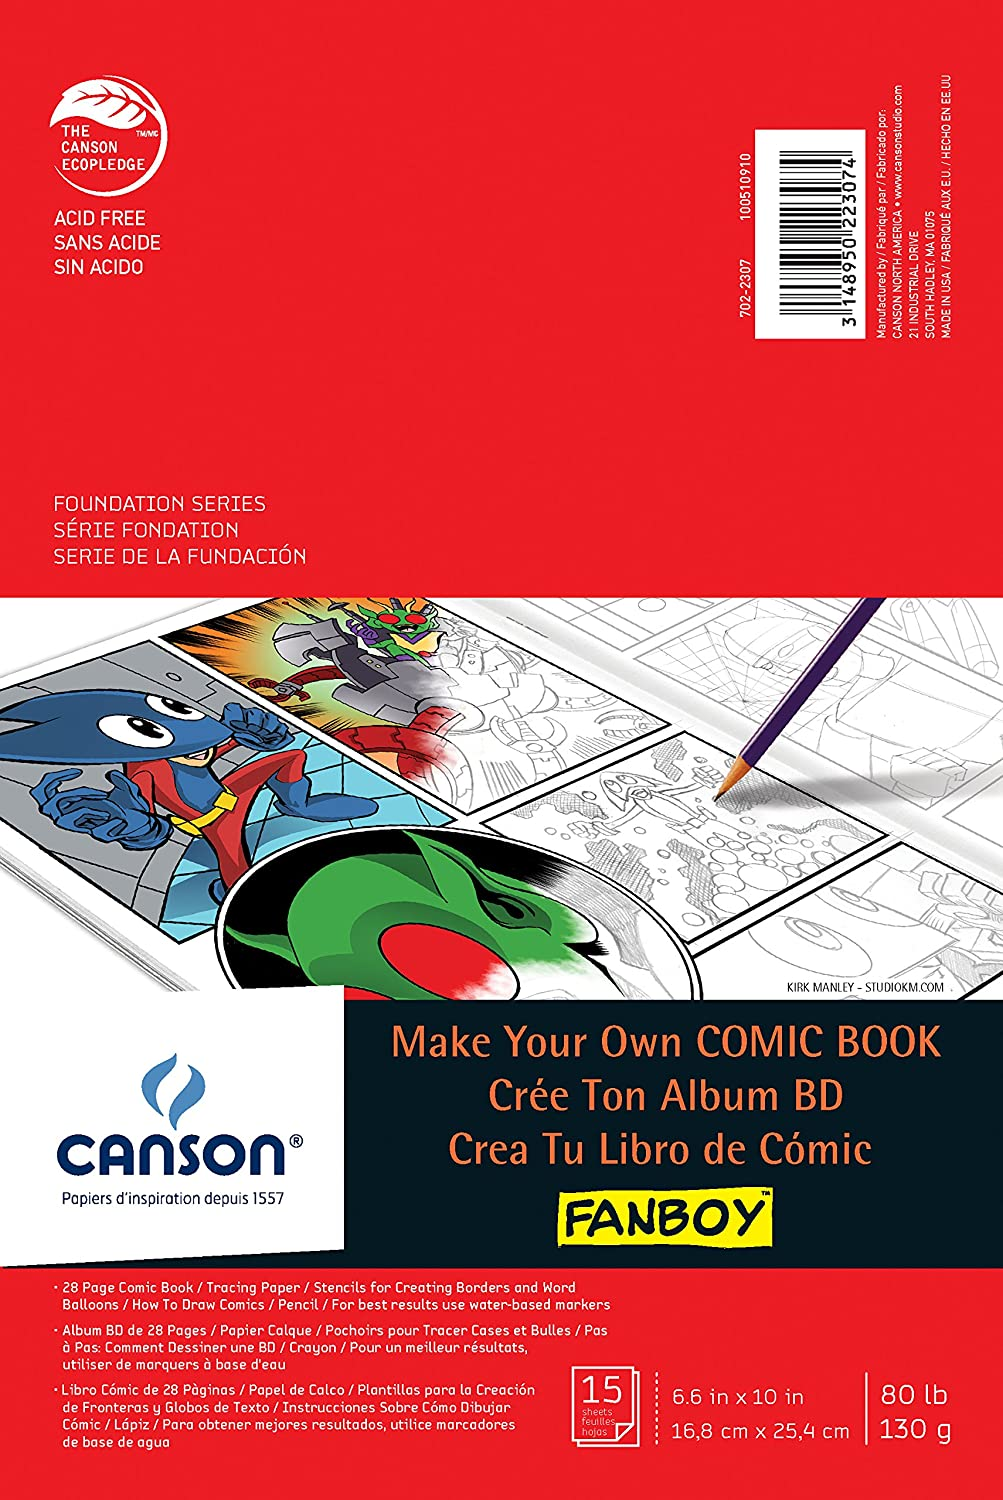 Canson Fanboy Make Your Own Comic Book